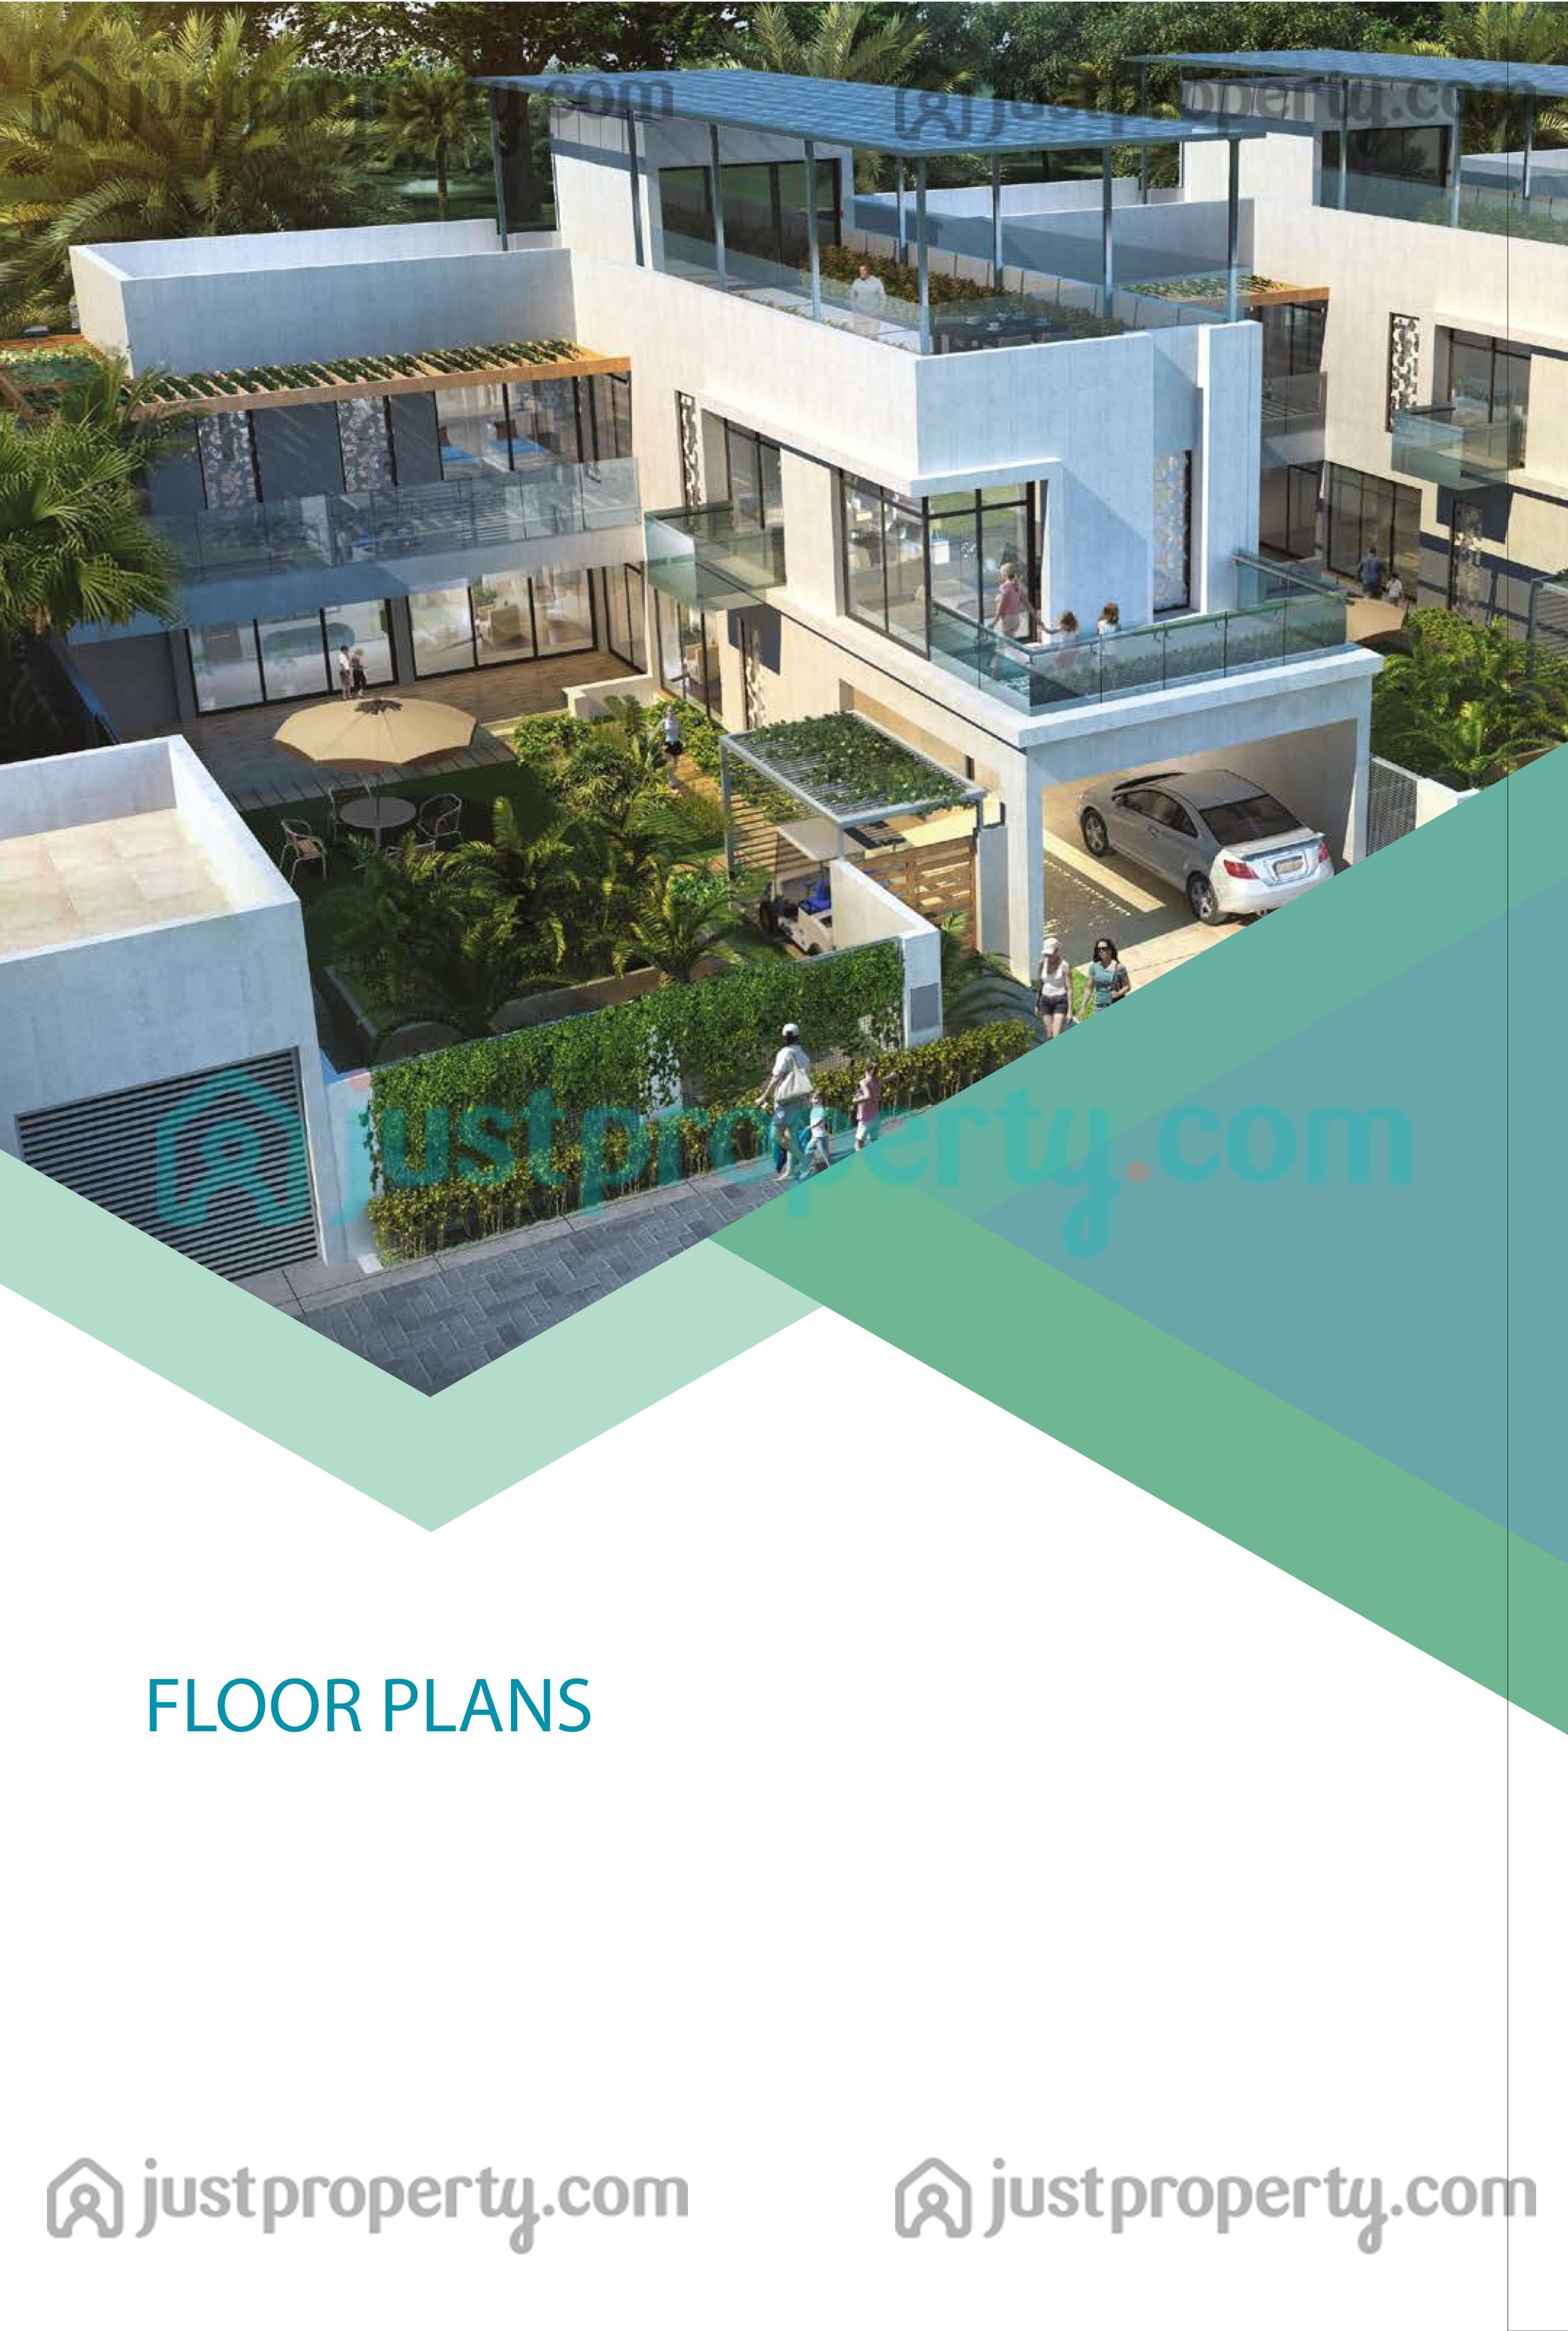 Dubai sustainable city floor plans for Sustainable home design